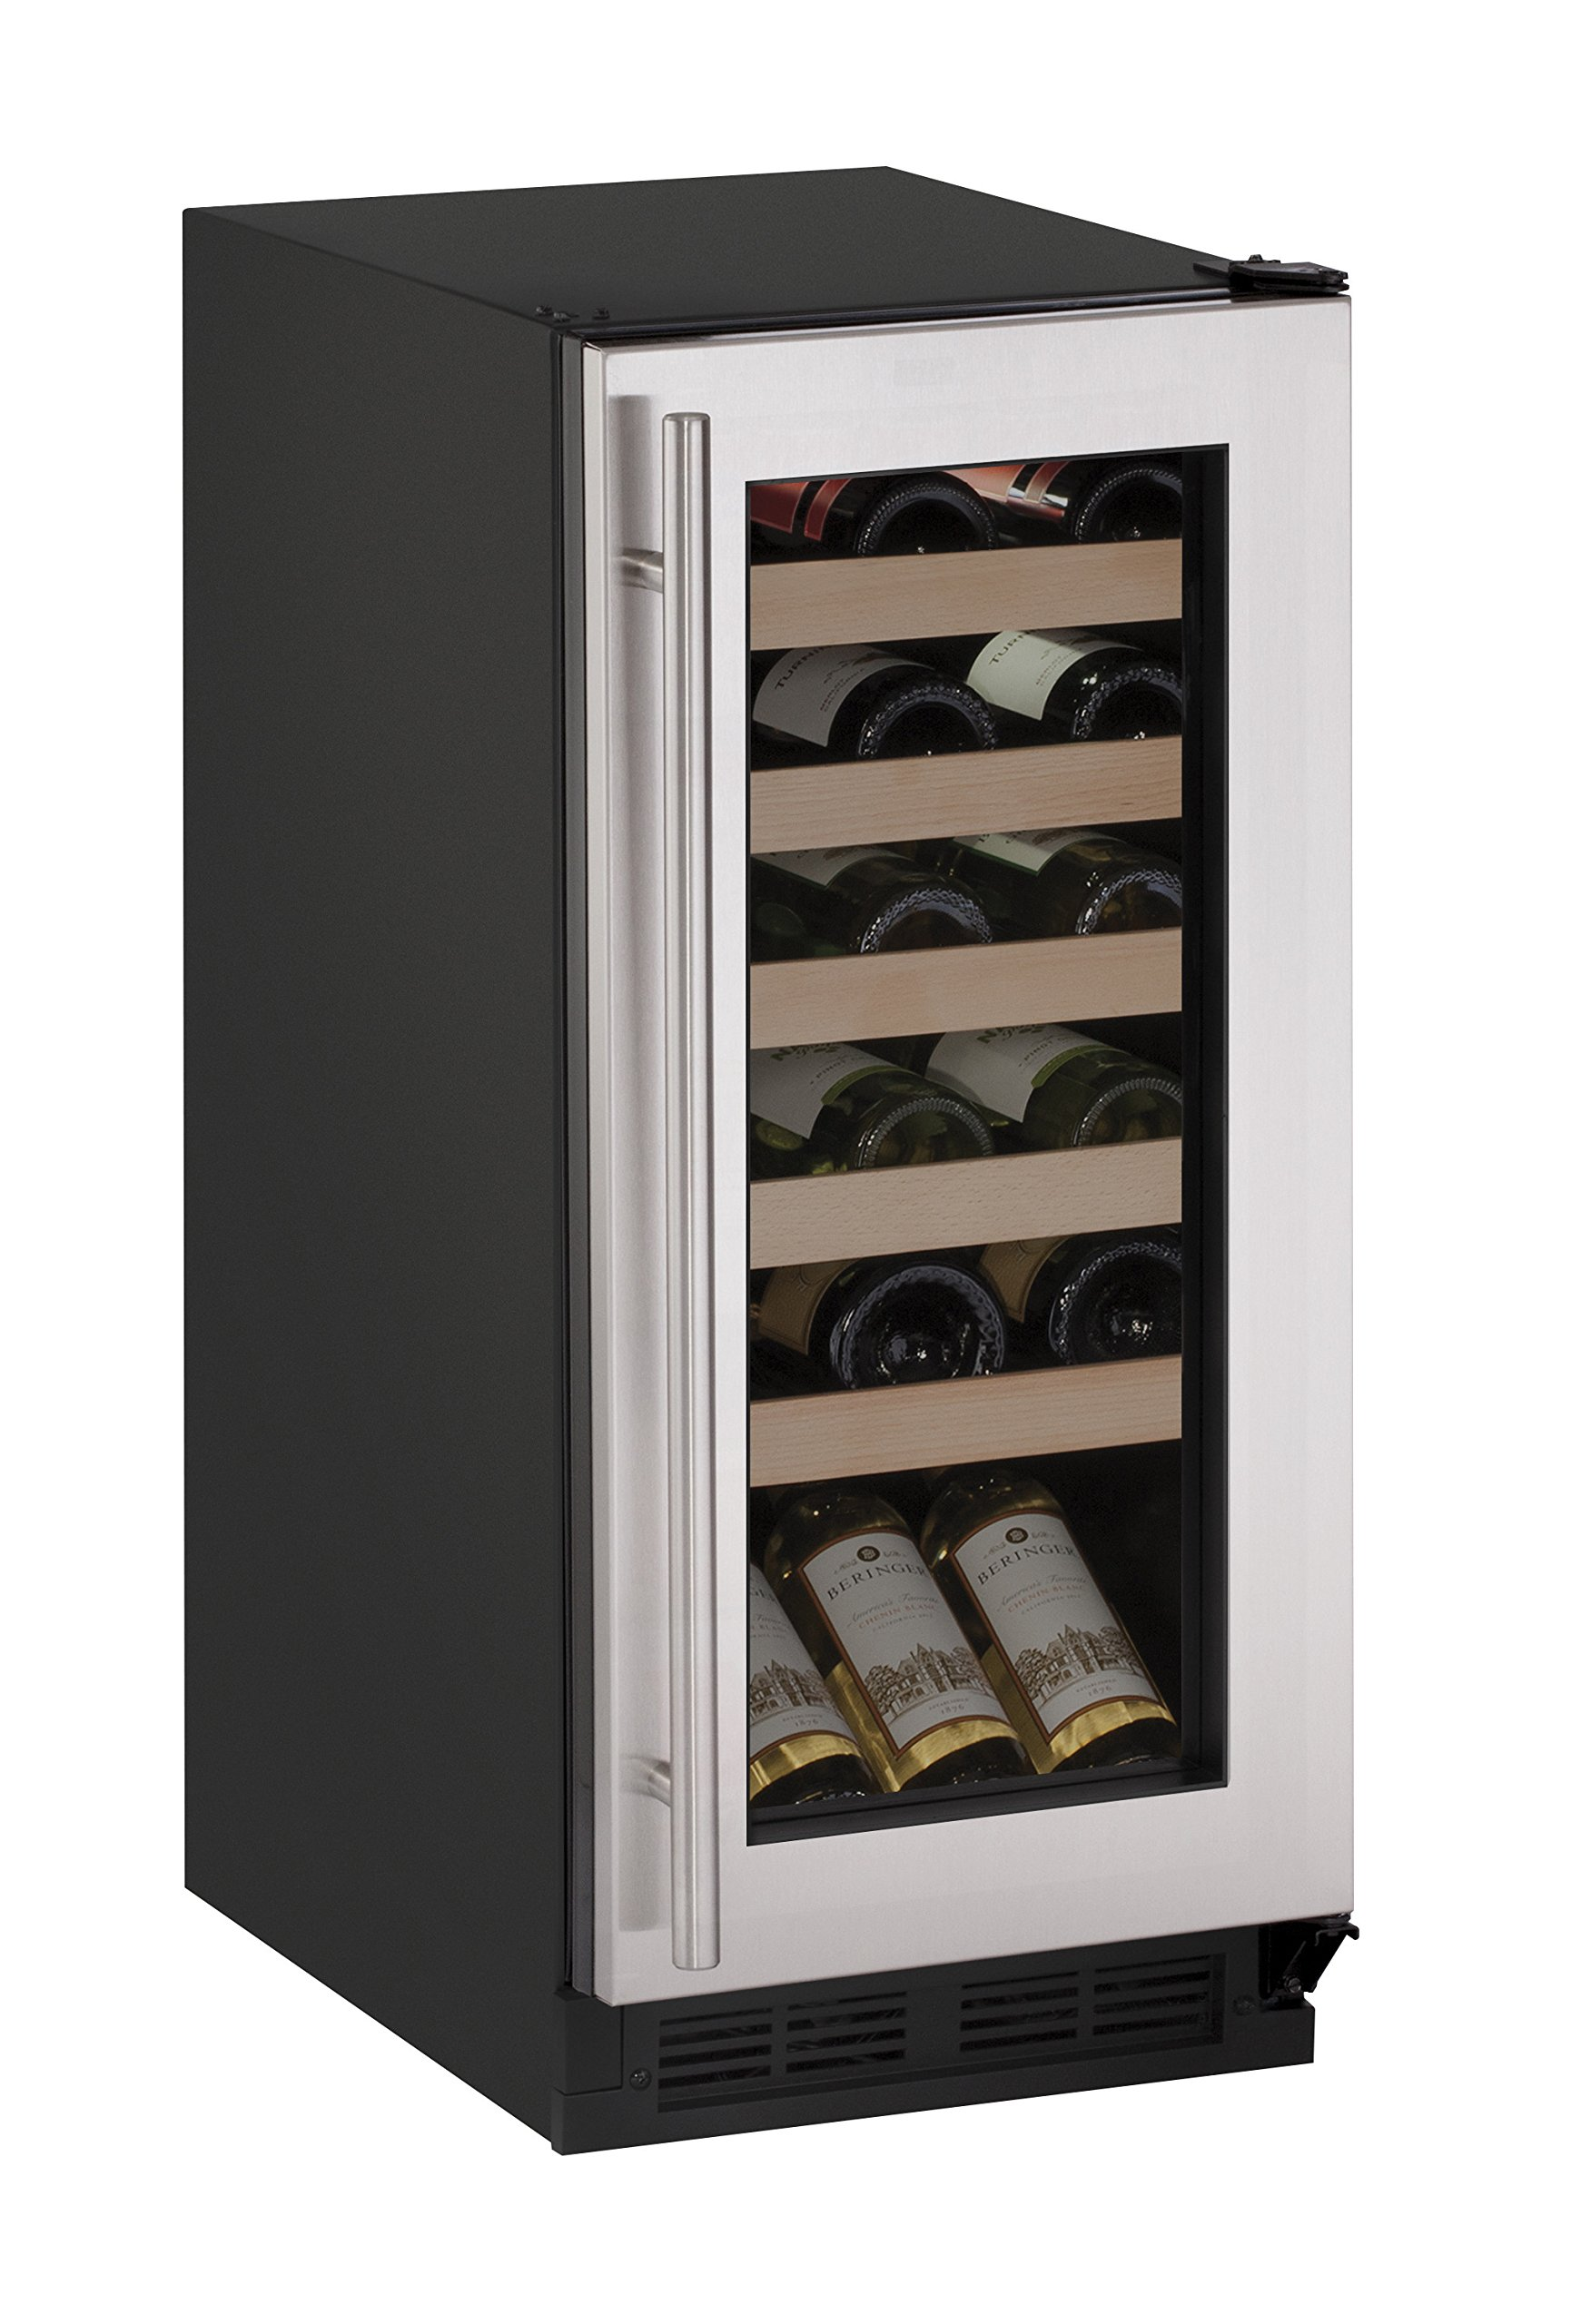 U-Line U1215WCS00A Built-in/Freestanding Wine Storage, 15'', Stainless Steel